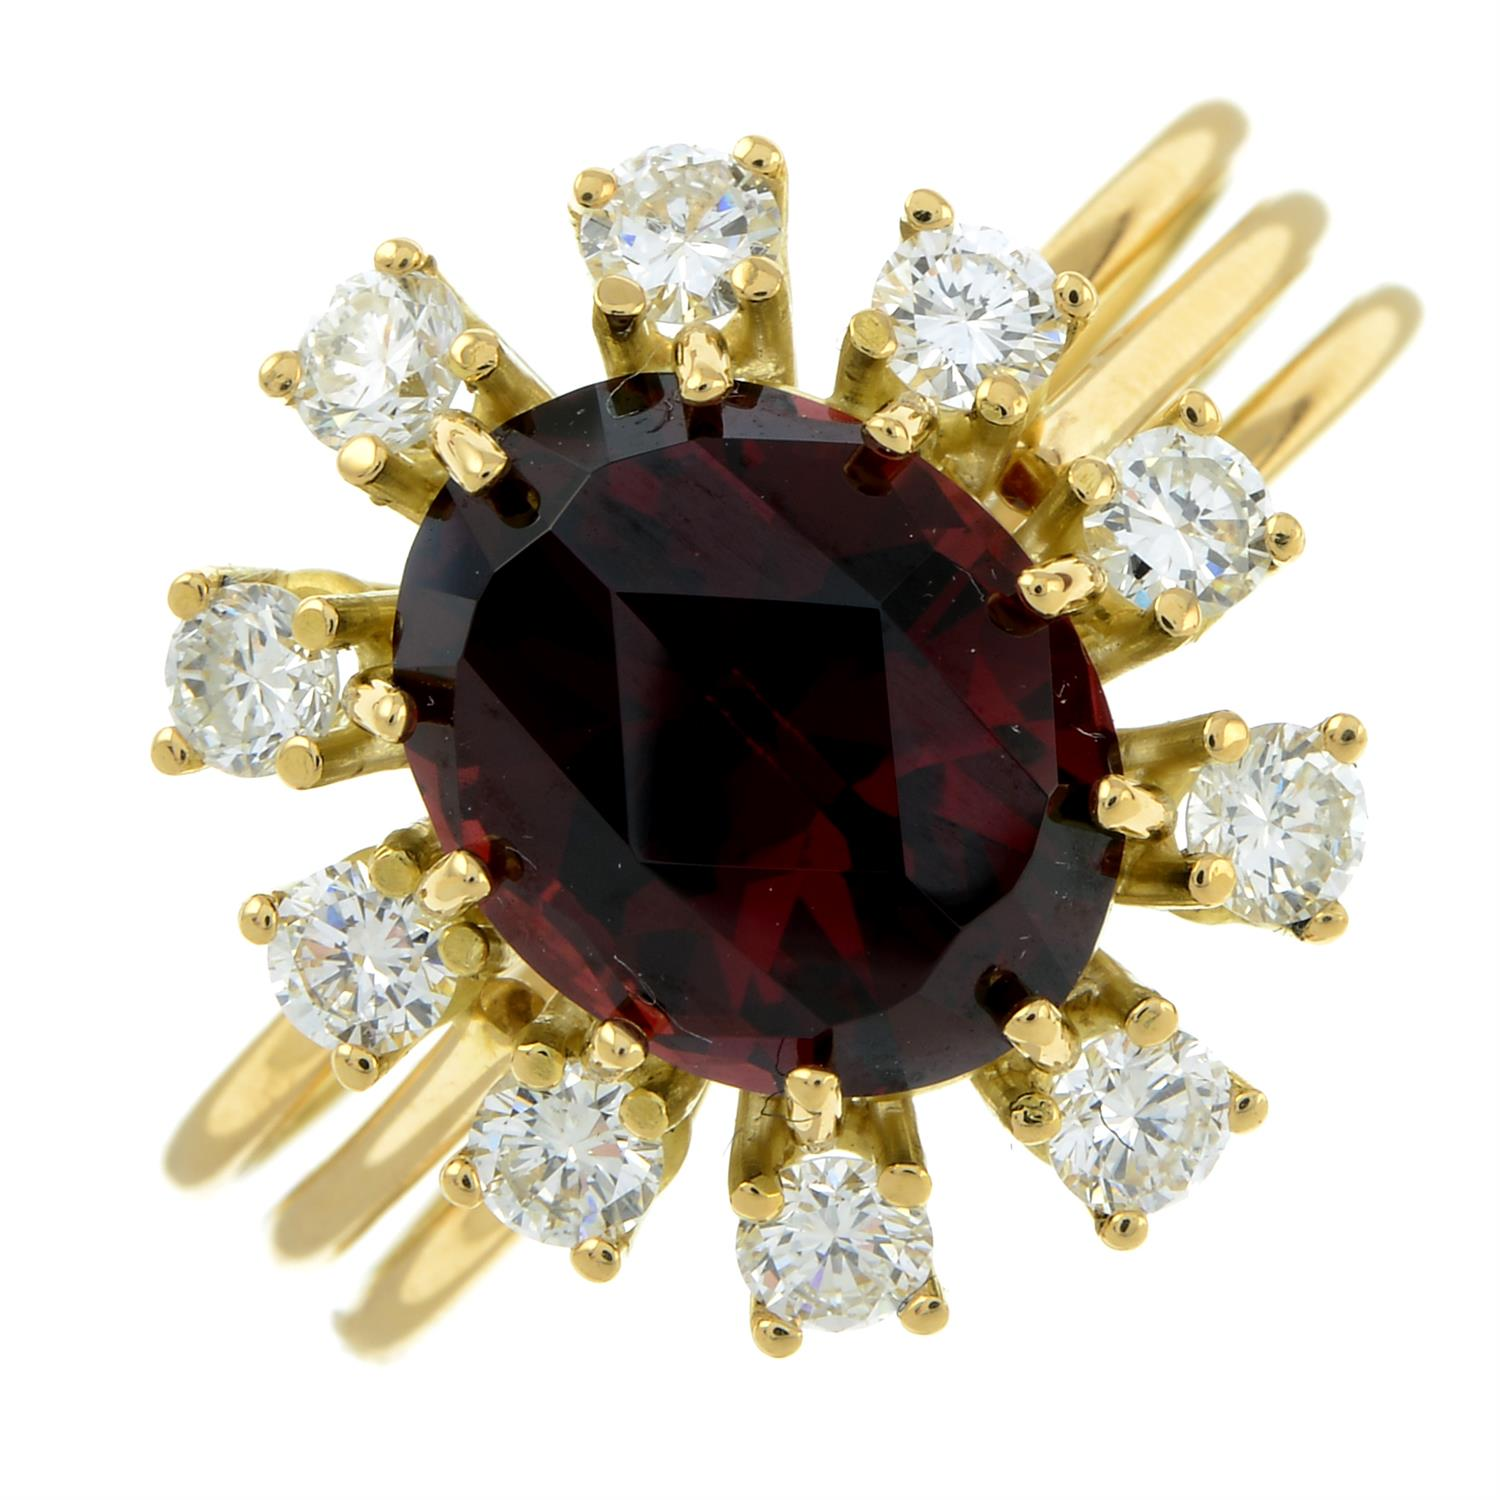 A garnet and brilliant-cut diamond cluster ring, attributed to Erwin Springbrunn. - Image 2 of 6